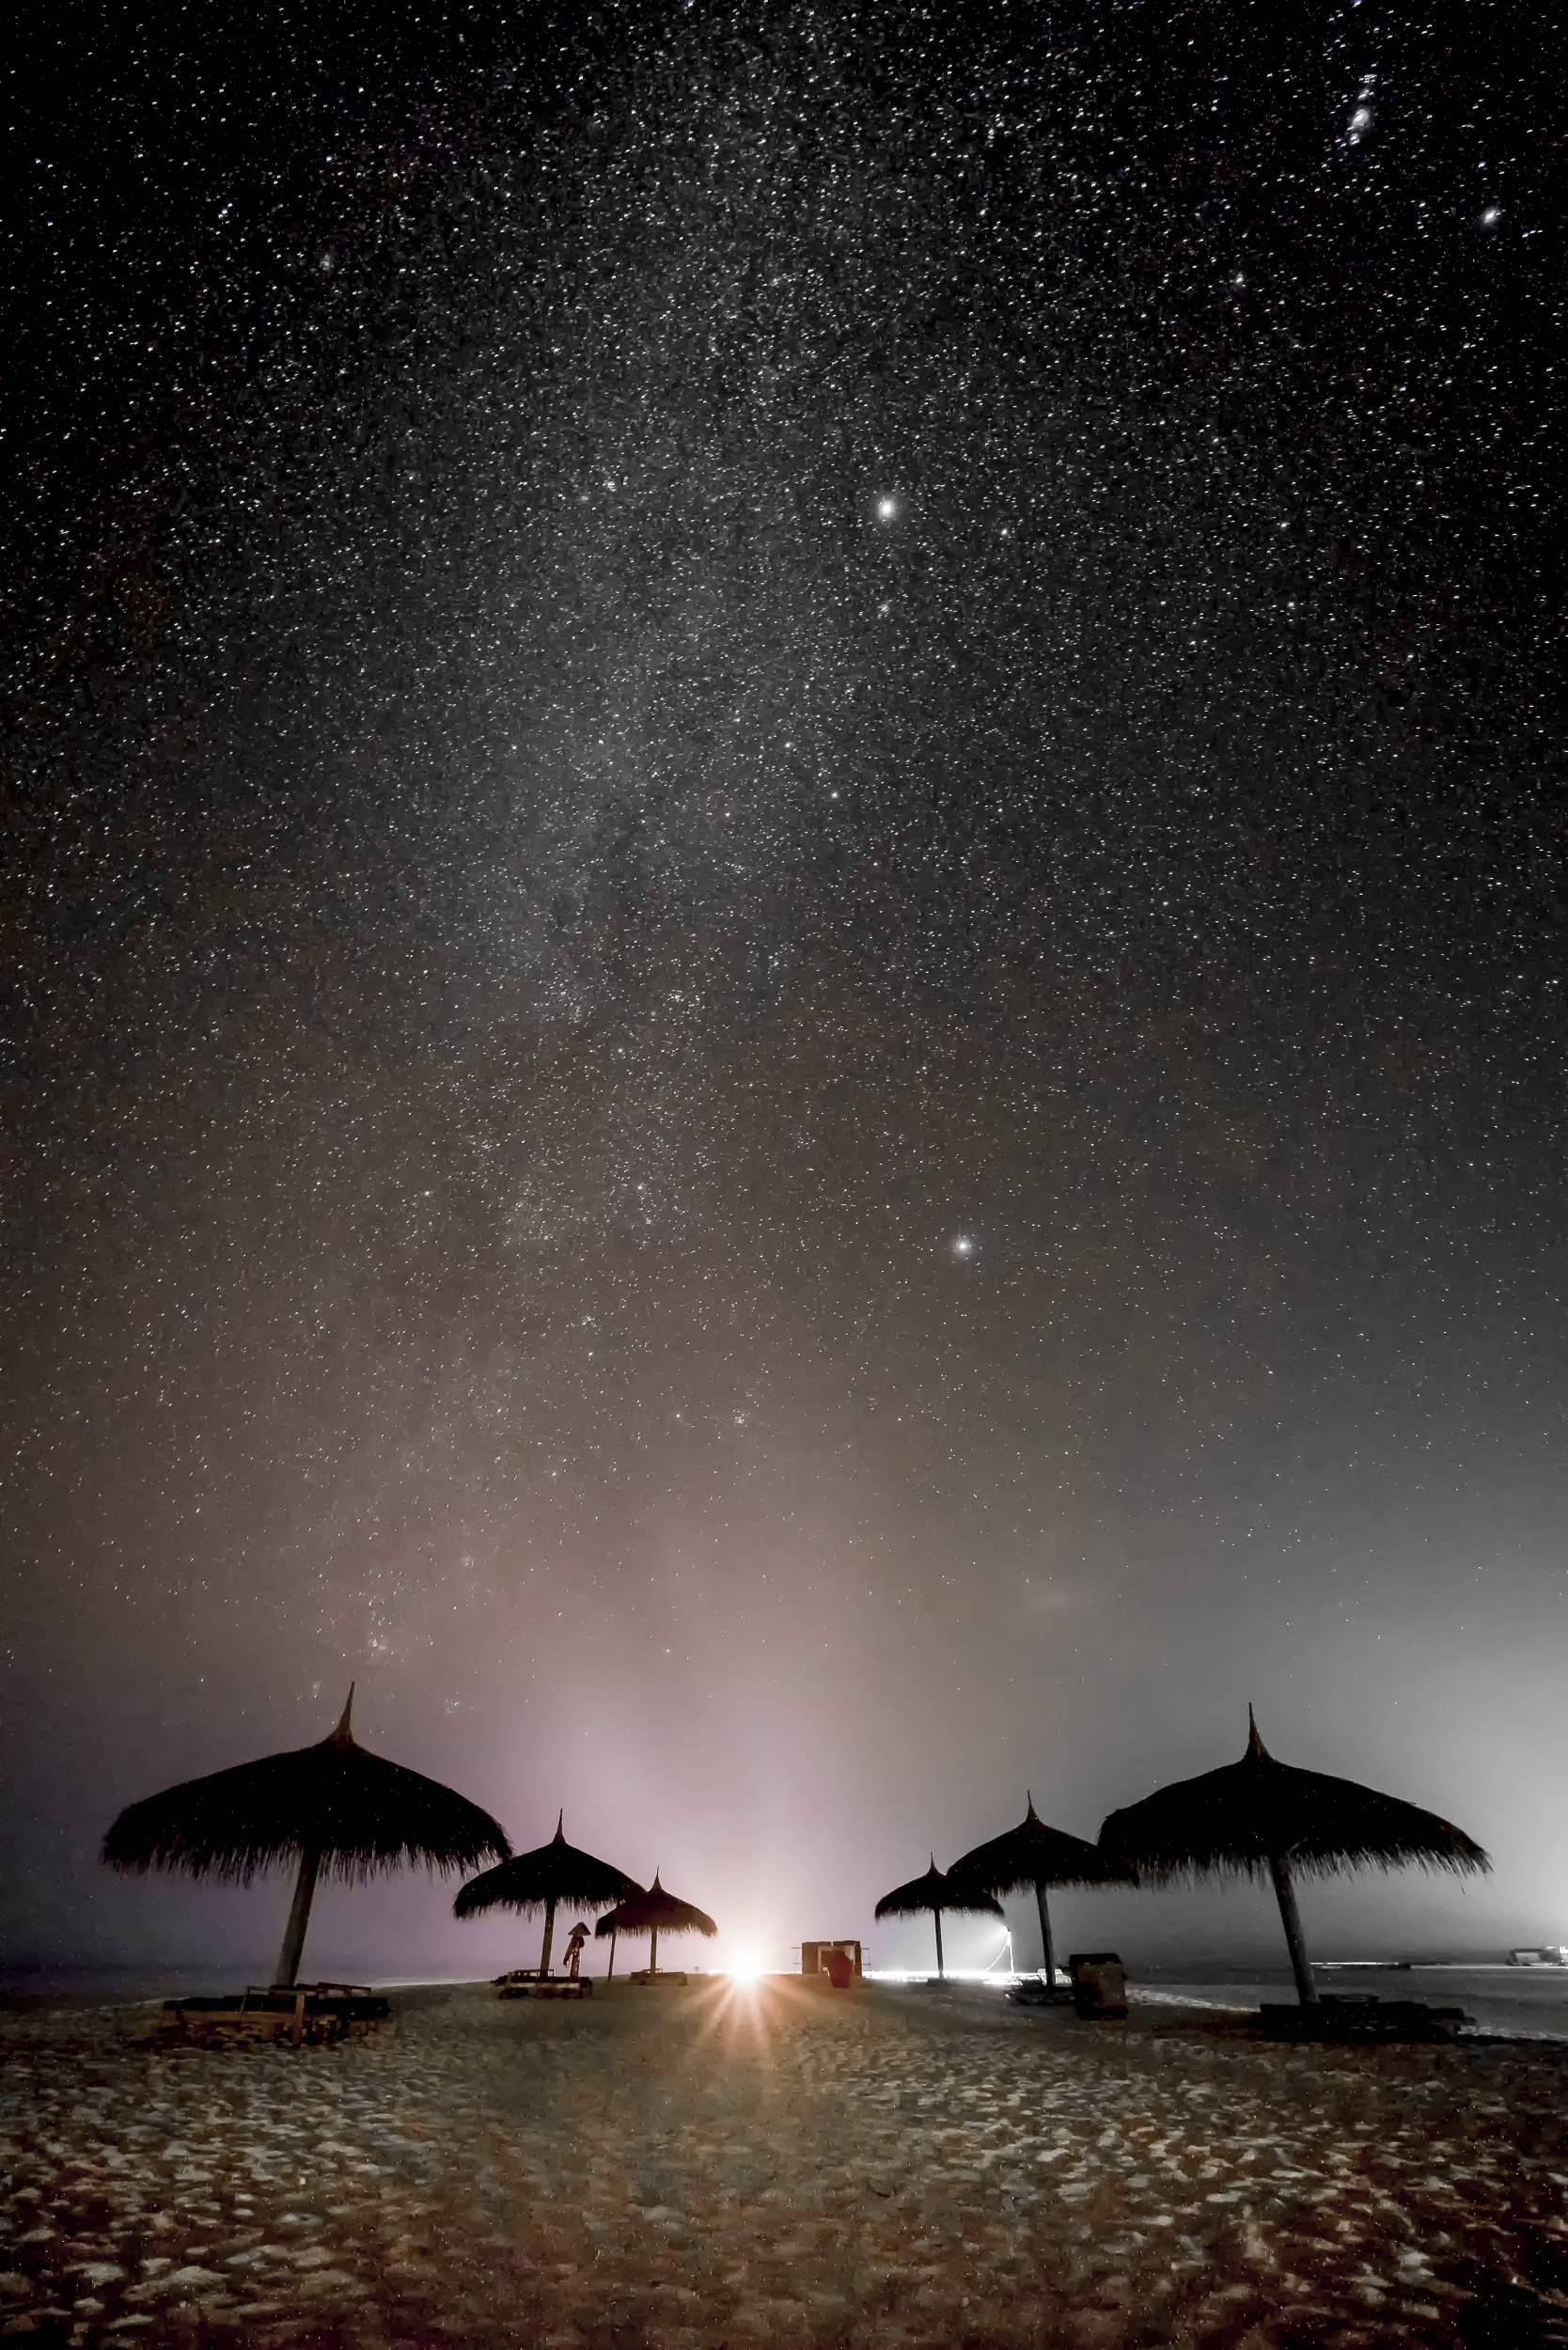 And one of my favorites from Maldives, a night shot of the Milky Way. And great thanks to my patient husband who sat with me late one night to get this image!